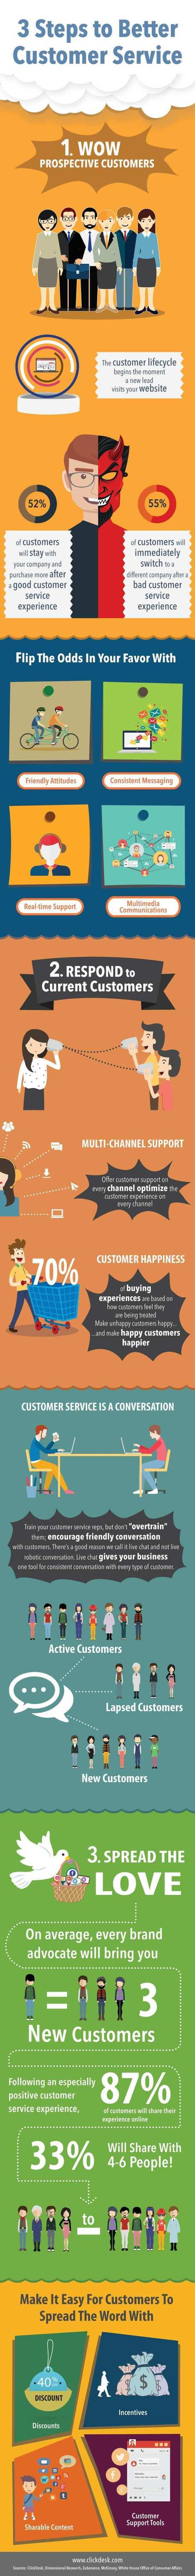 Case Study: Top 3 ways to build better Customer Services | All Infographics | Scoop.it